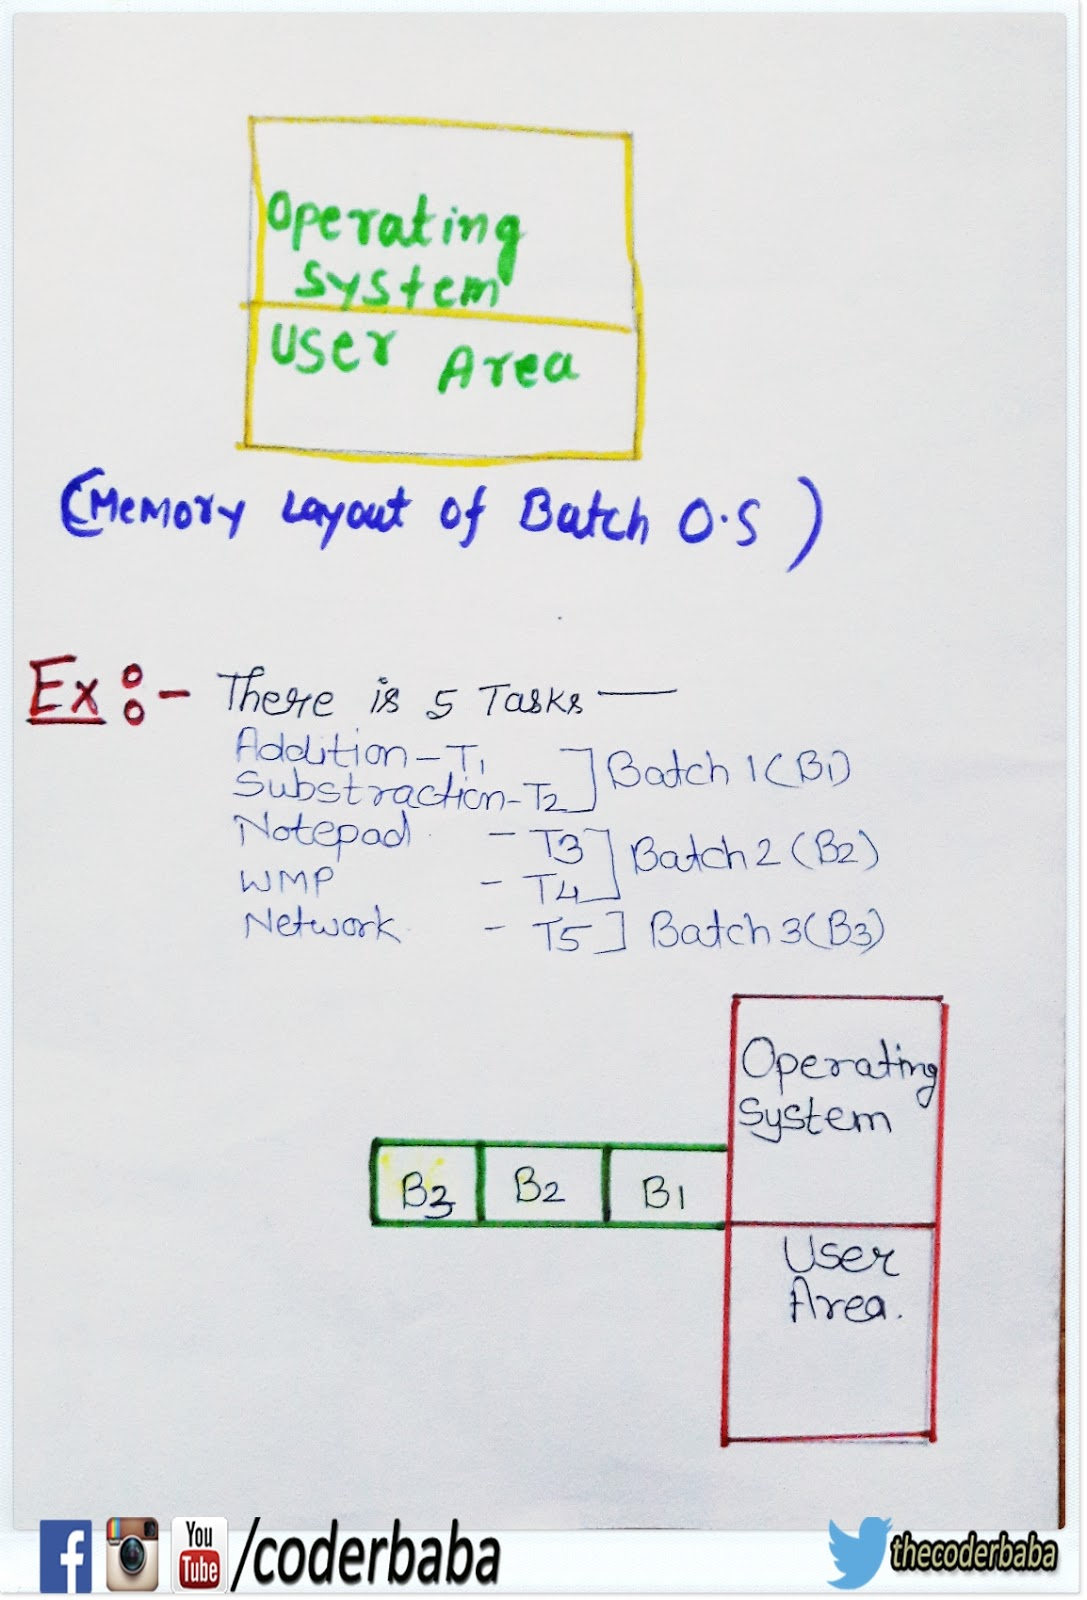 classification or evolution of operating system